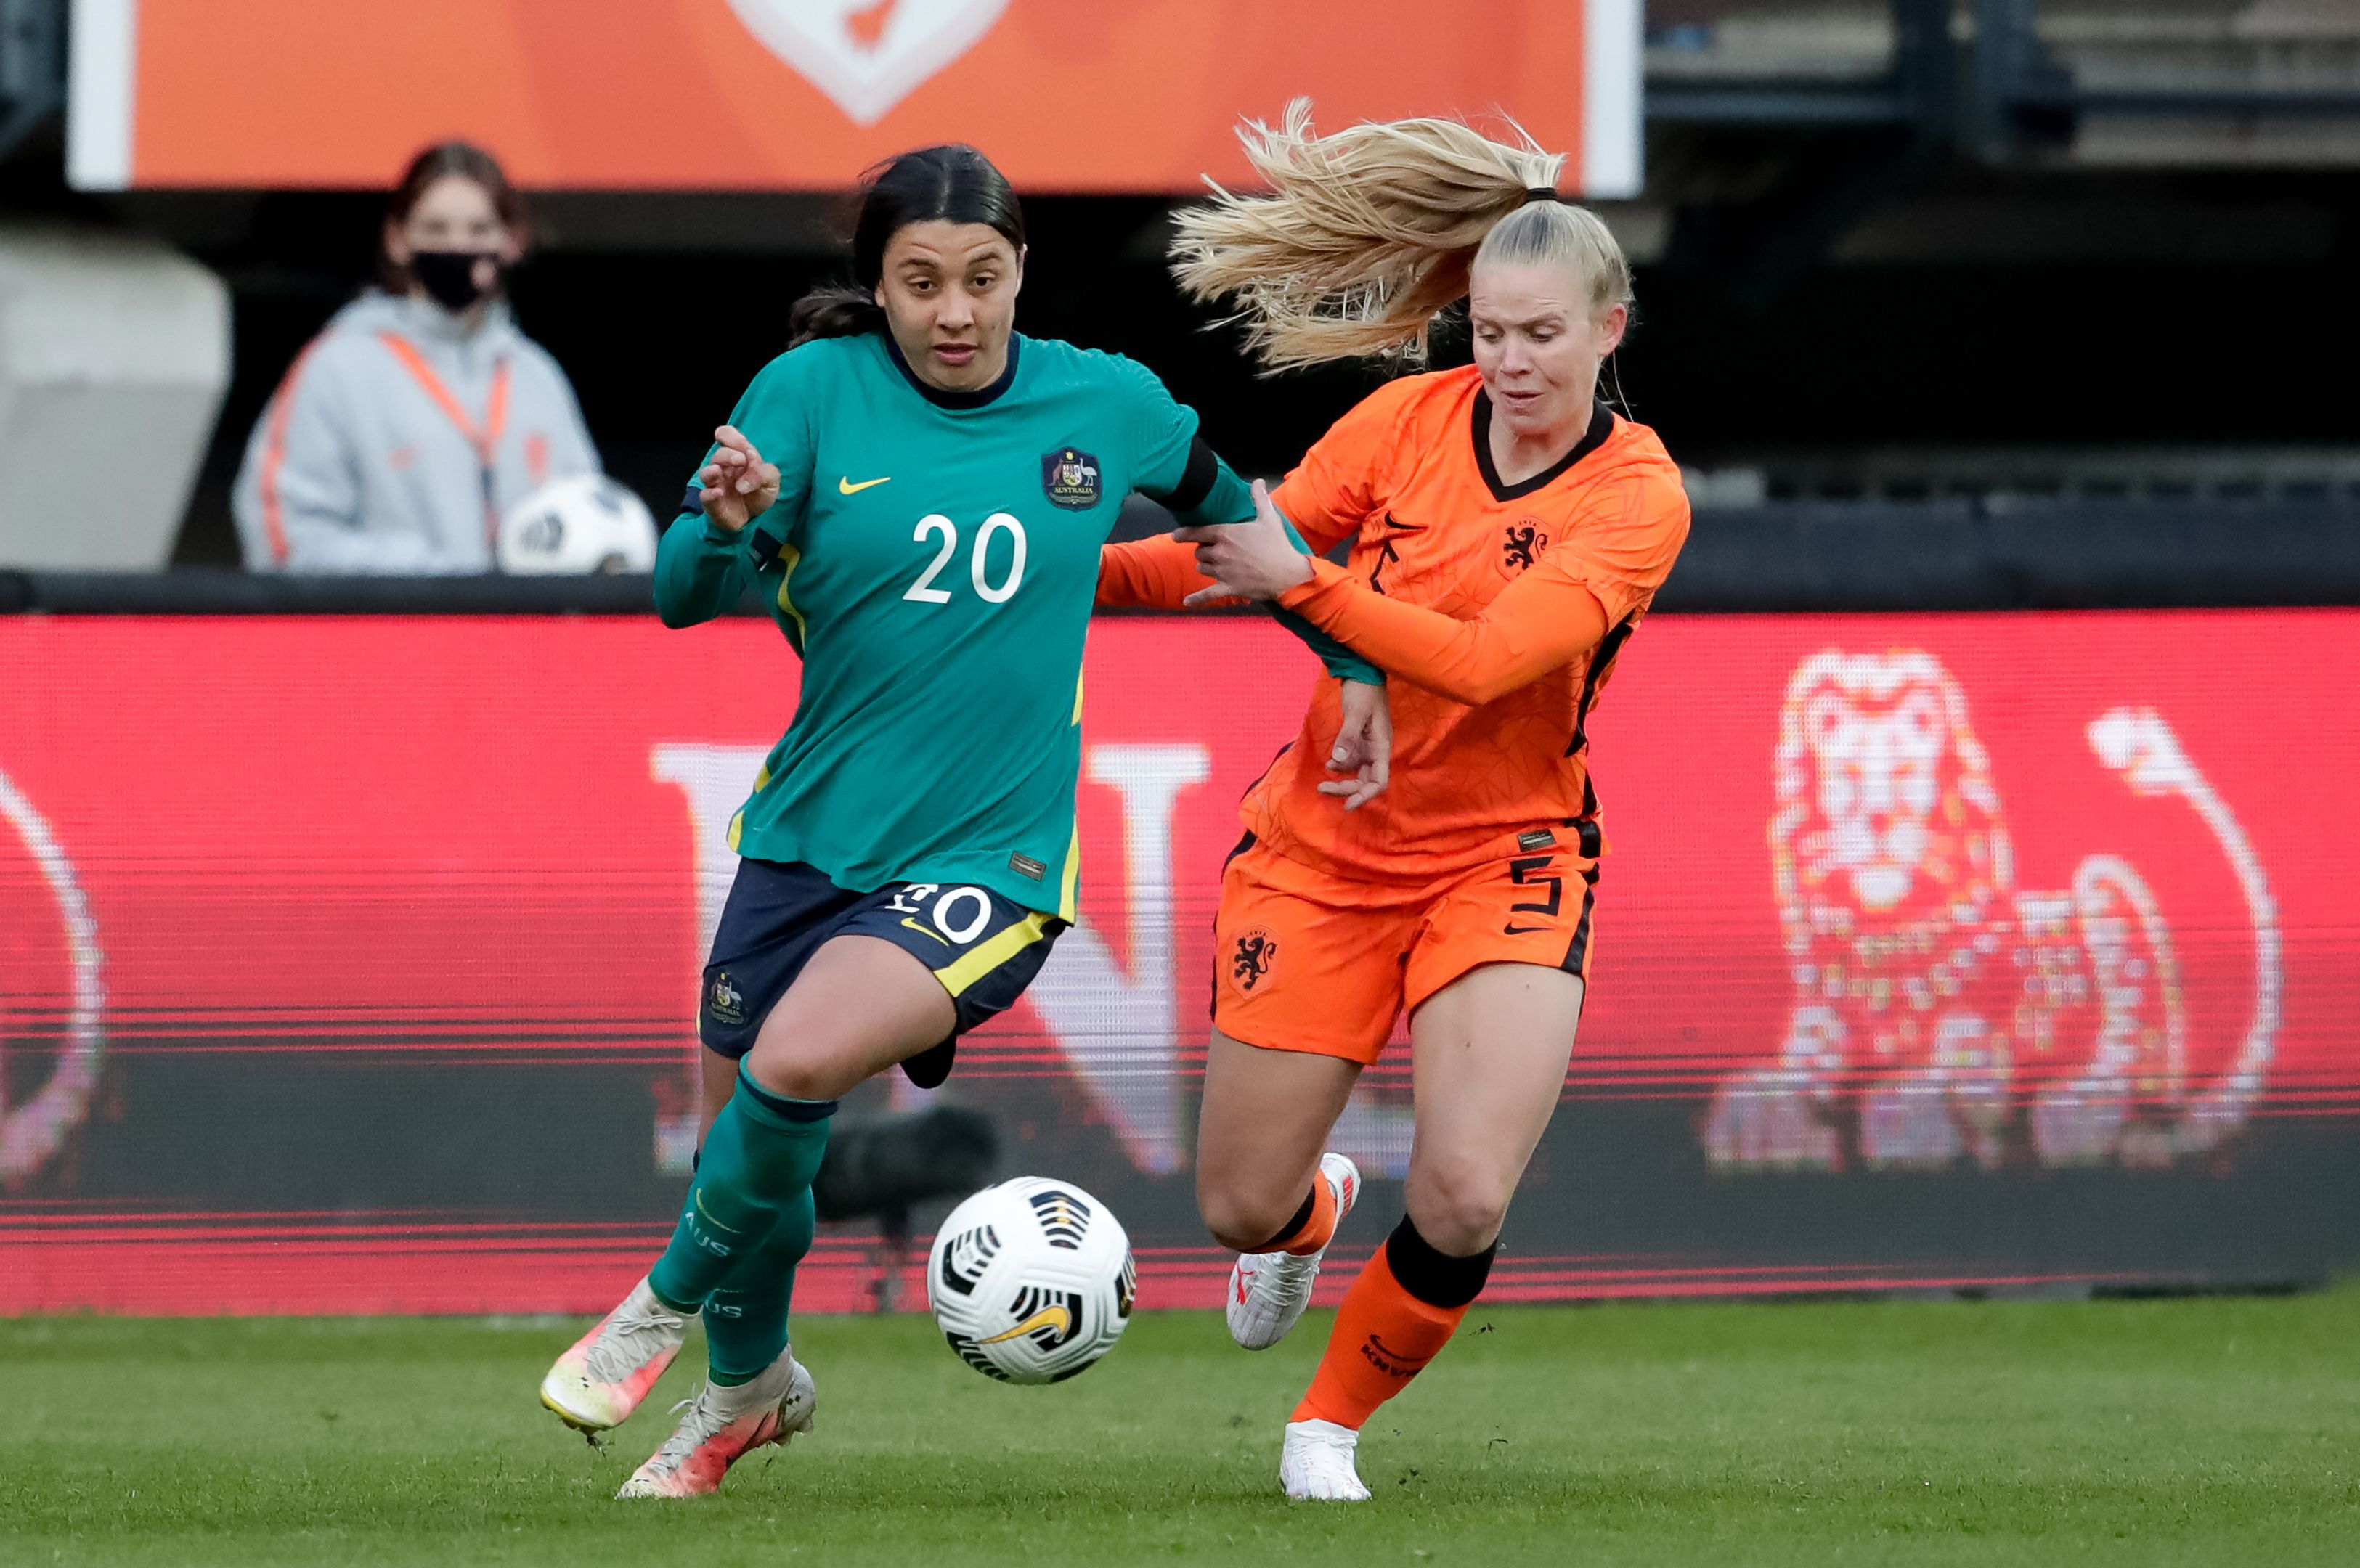 Matildas suffer massive 5-0 defeat to Netherlands in second big loss in a week